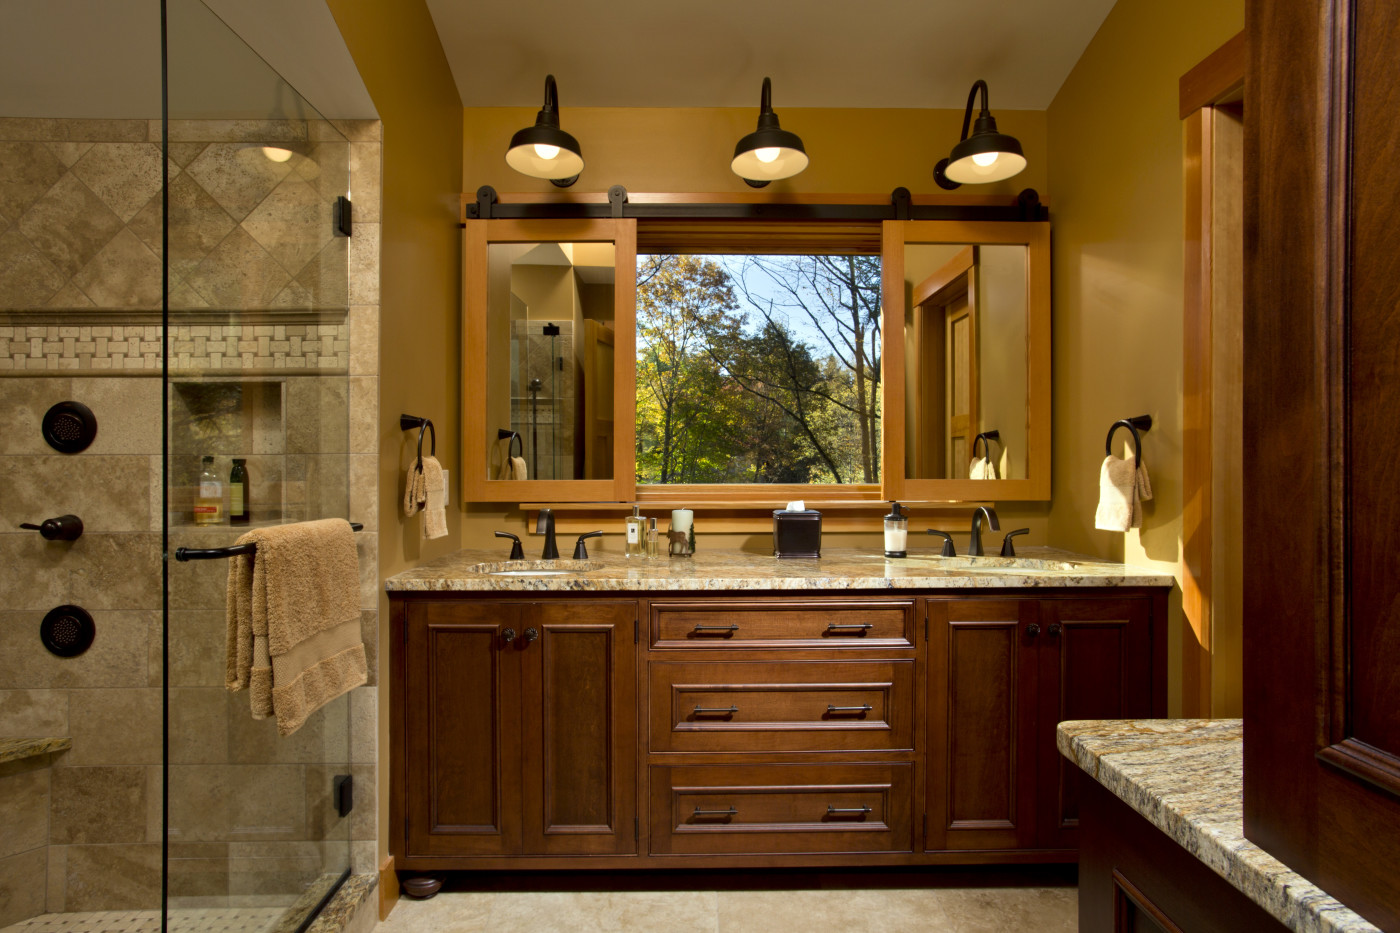 Bathroom Lighting Design: Lighting The Throne Room